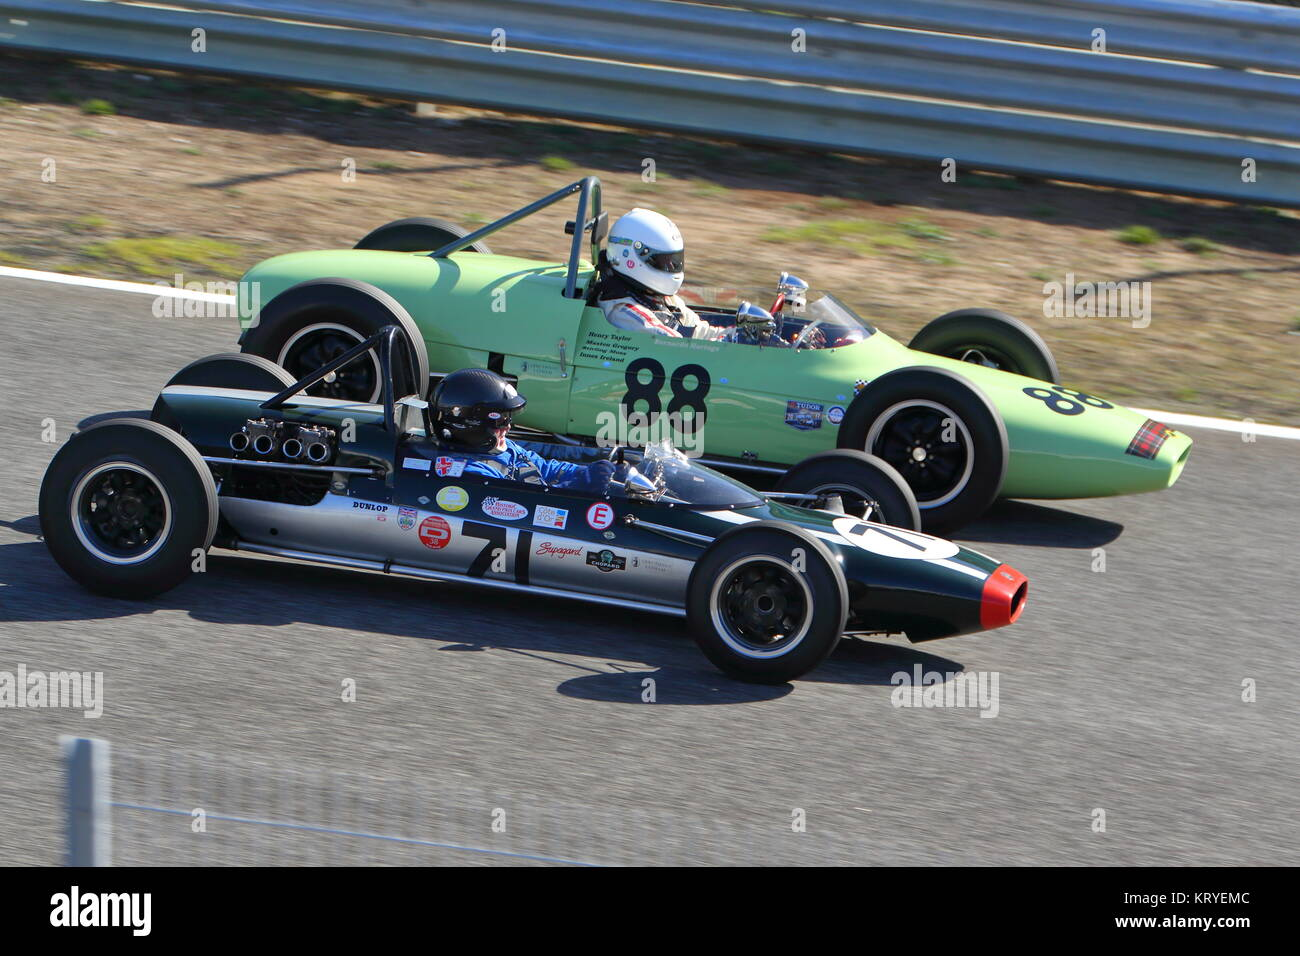 Classic Racing Cars competing over a weekend in Estoril, Portugal, in October 2017. - Stock Image